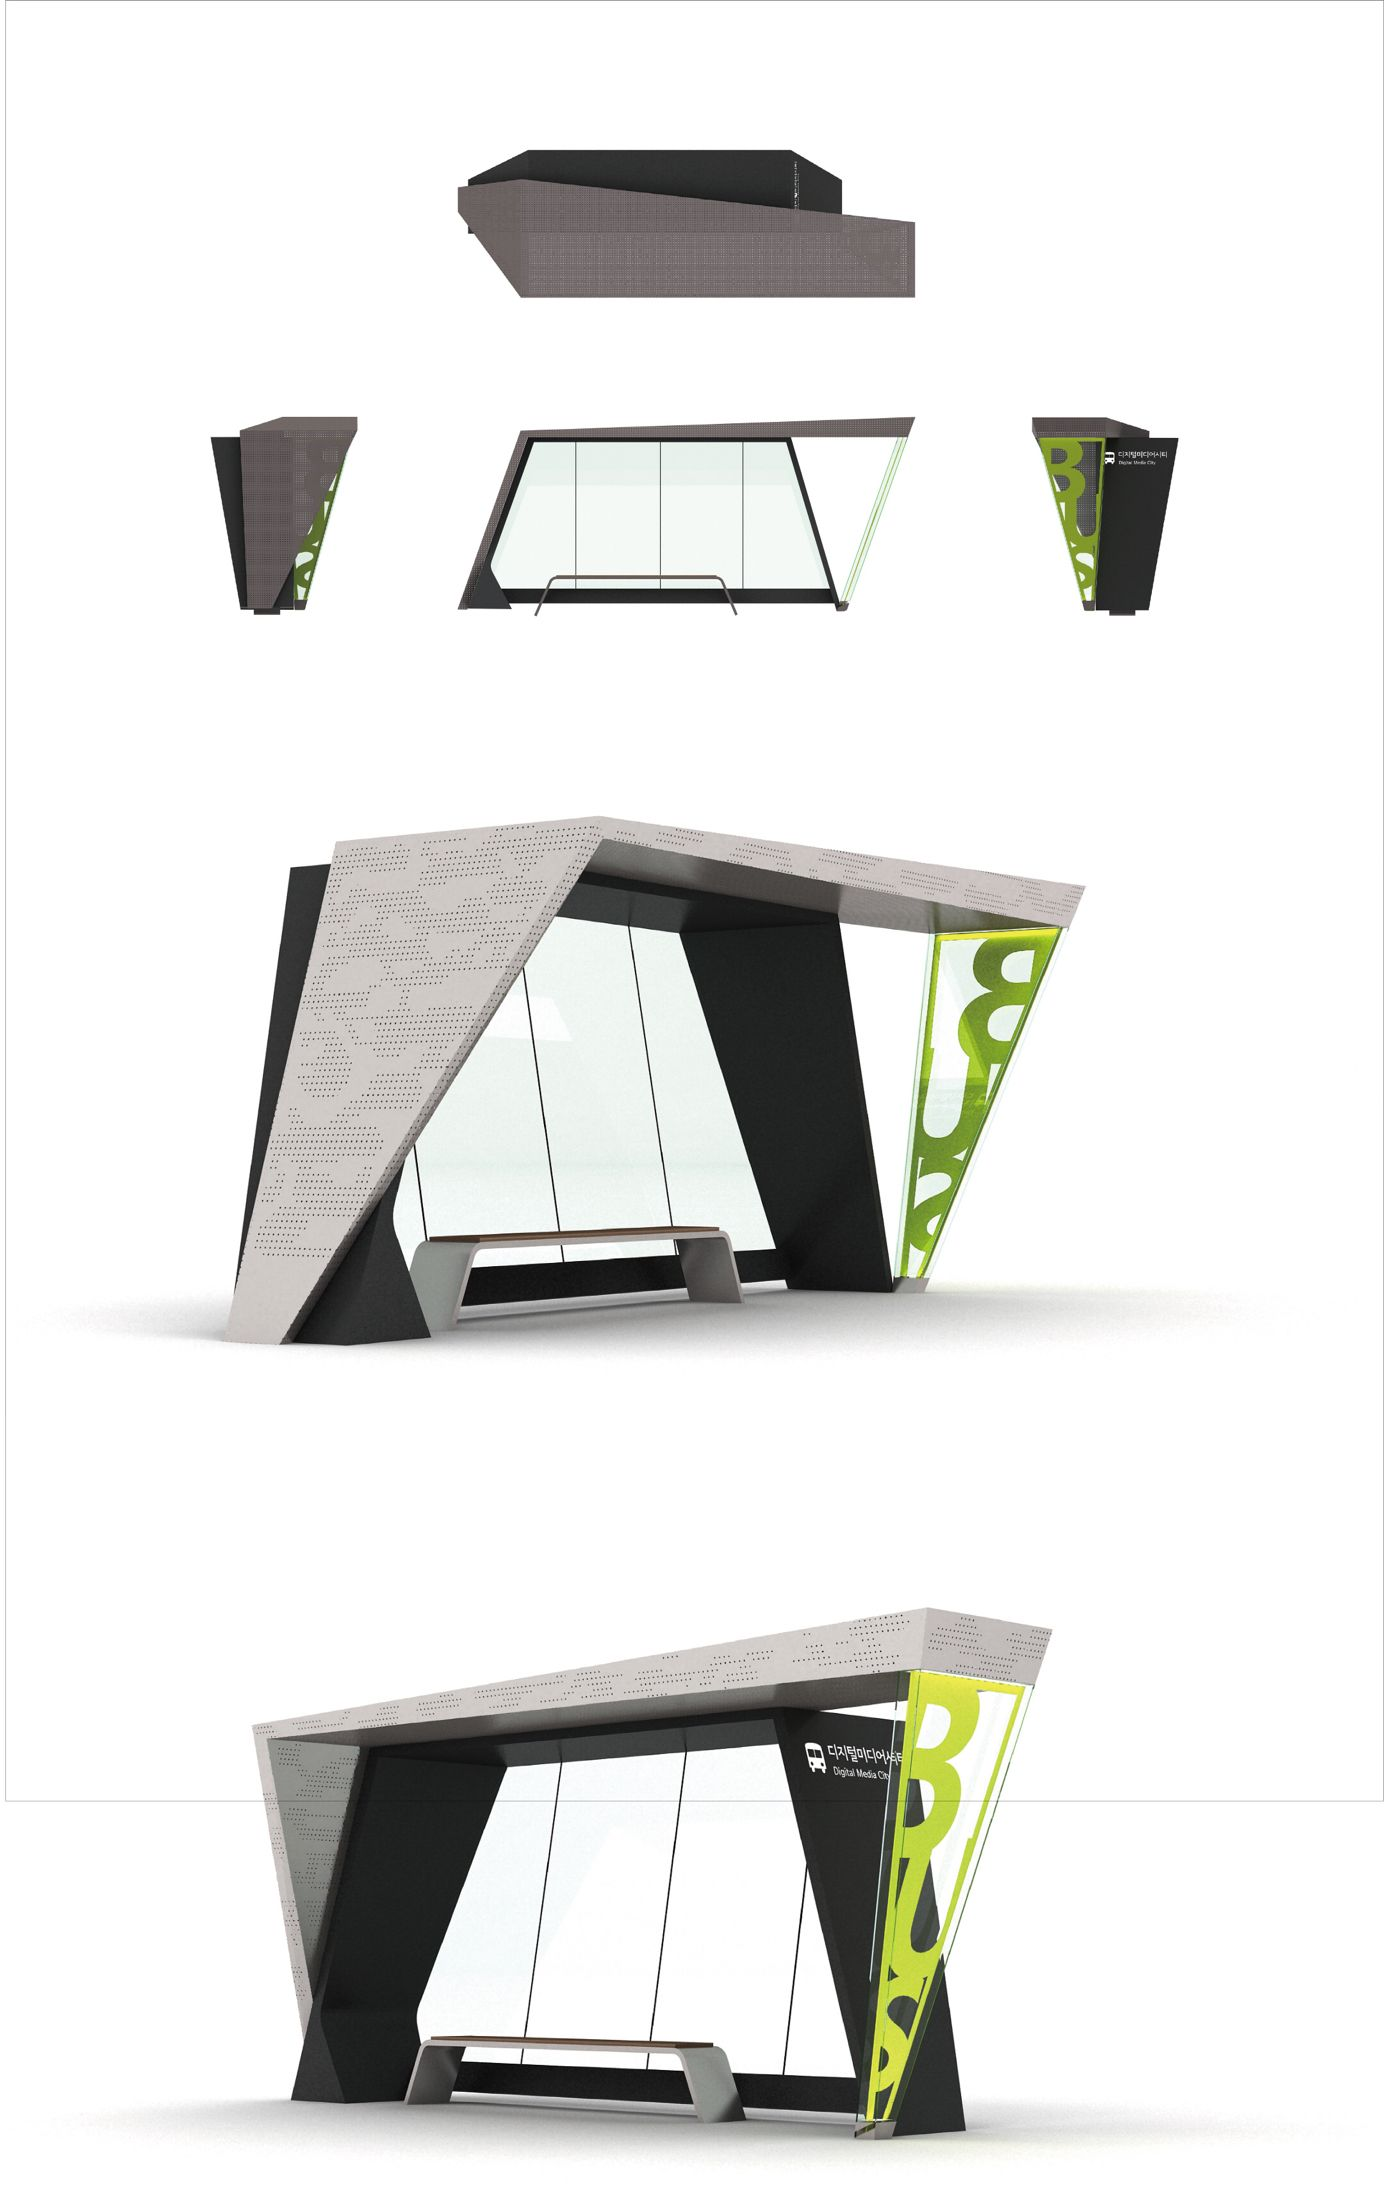 the urban furnishing by calzolari design by mdu architetti urban environmental design bus stop